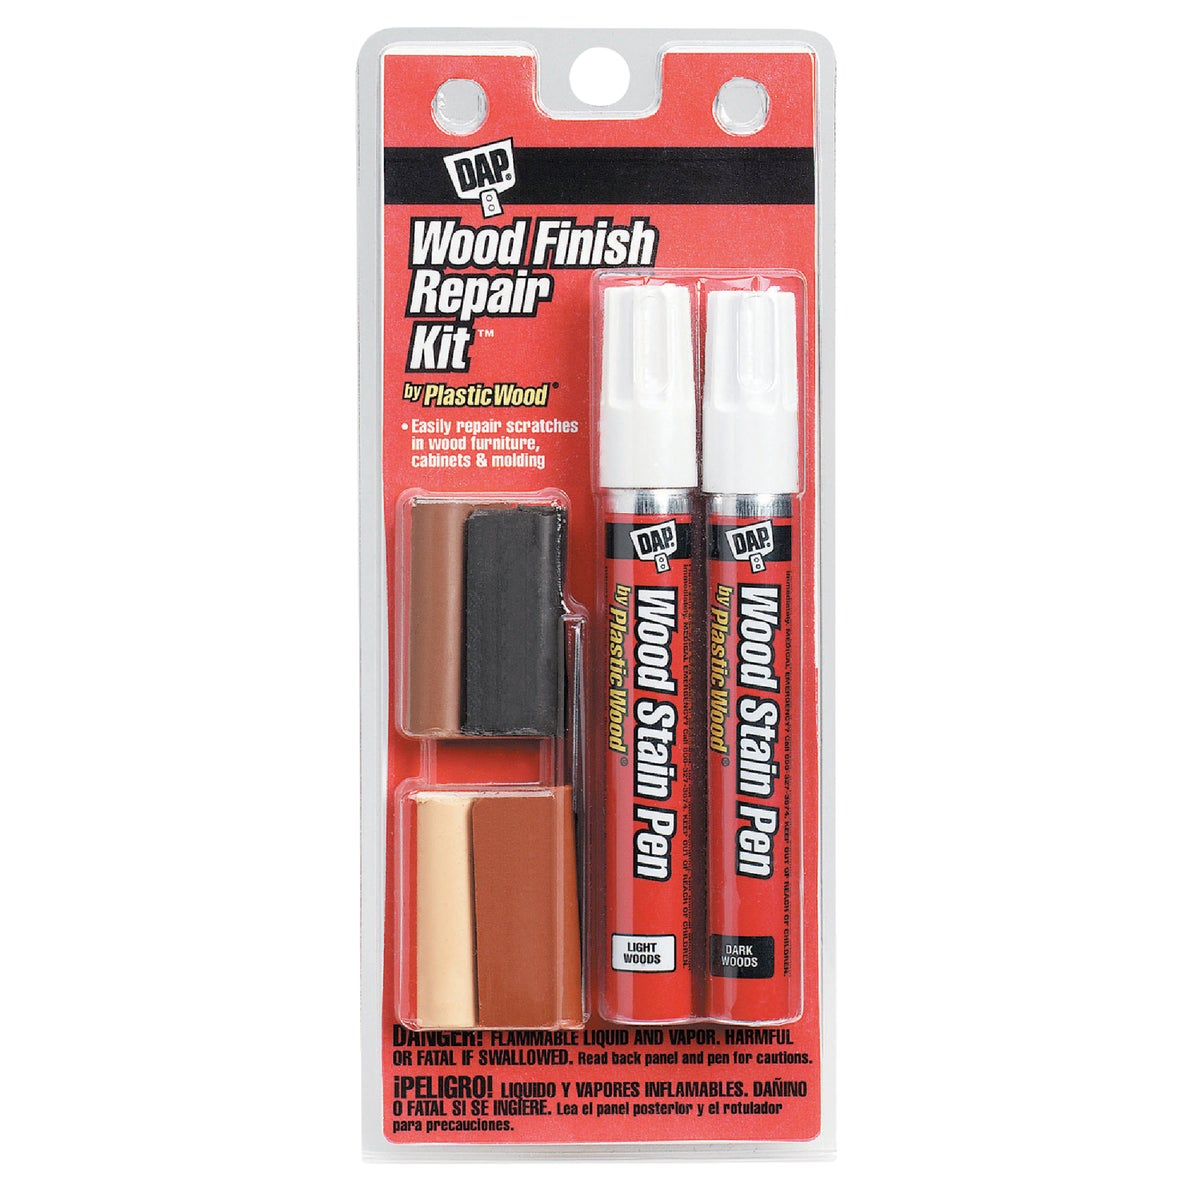 WOOD FINISH REPAIR KIT - 97500 by Dap Inc